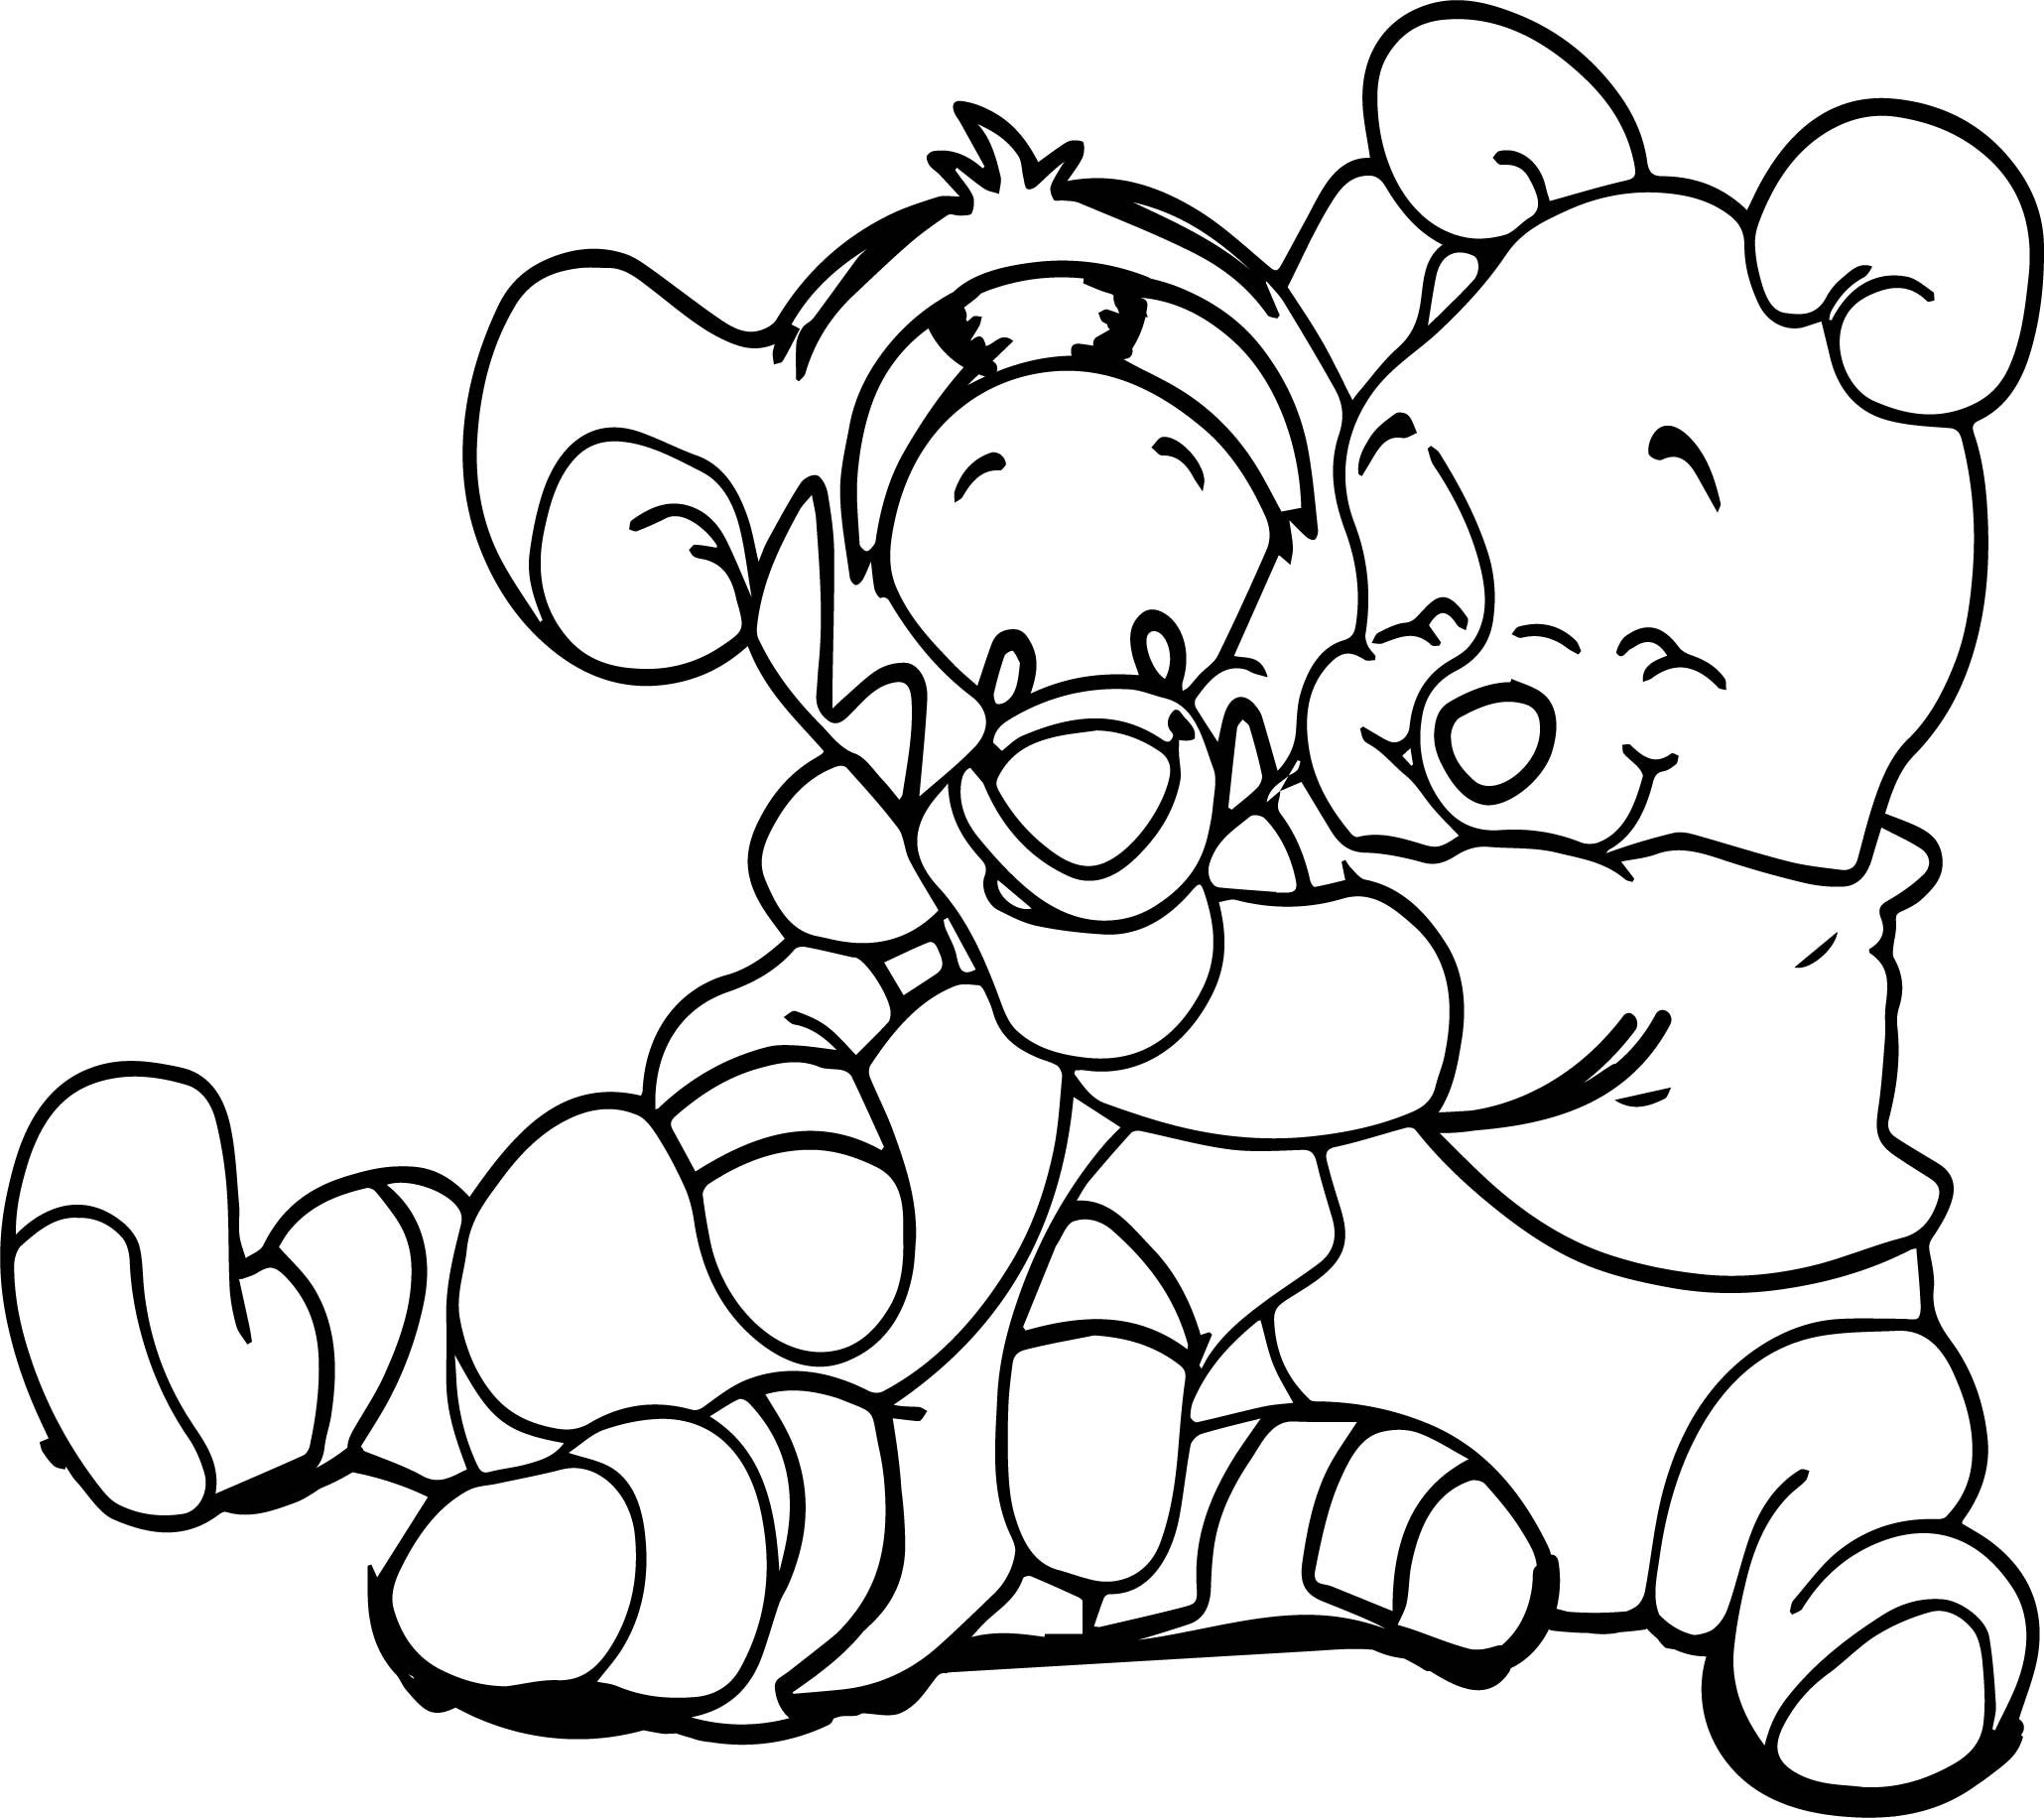 Baby Pooh And Piglet Coloring Pages Get Sketch Coloring Page